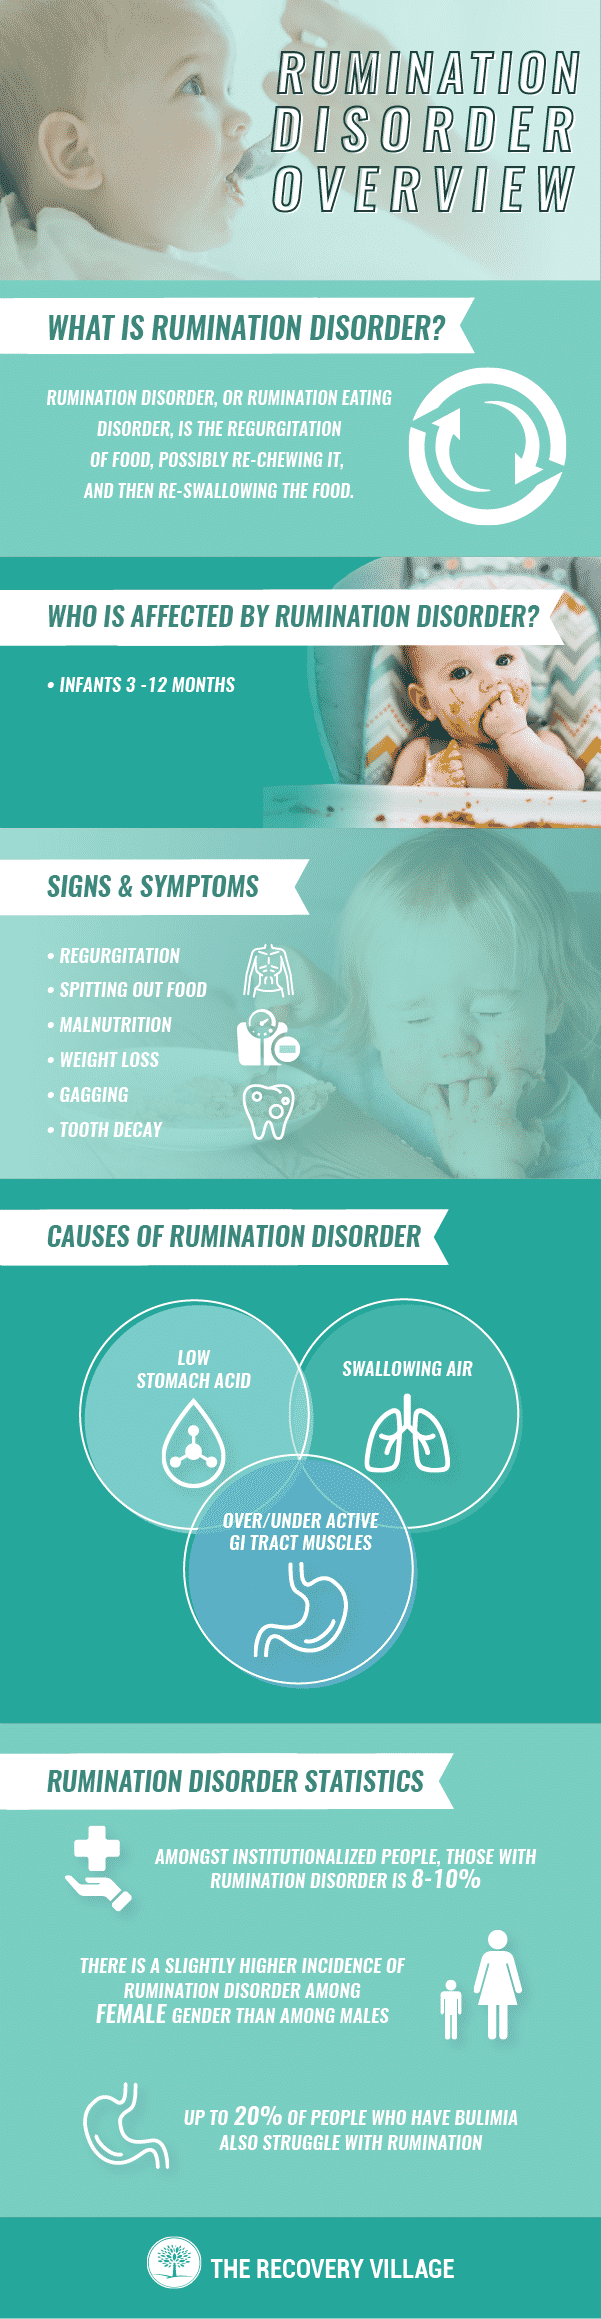 Infographic detailing information about rumination eating disorder